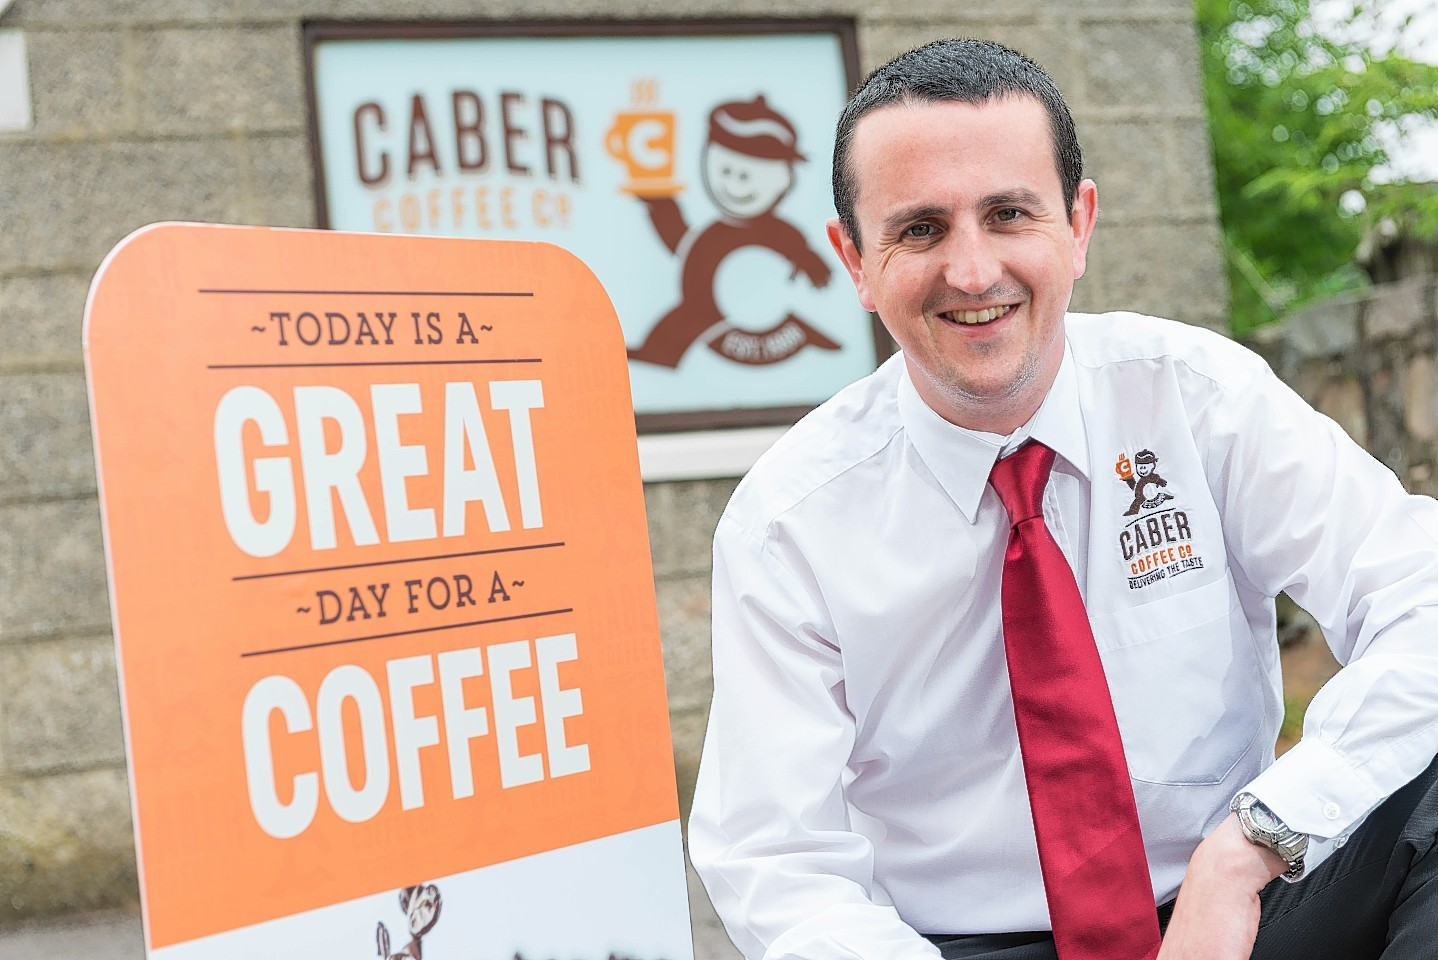 Caber Coffee managing director Findlay Leask